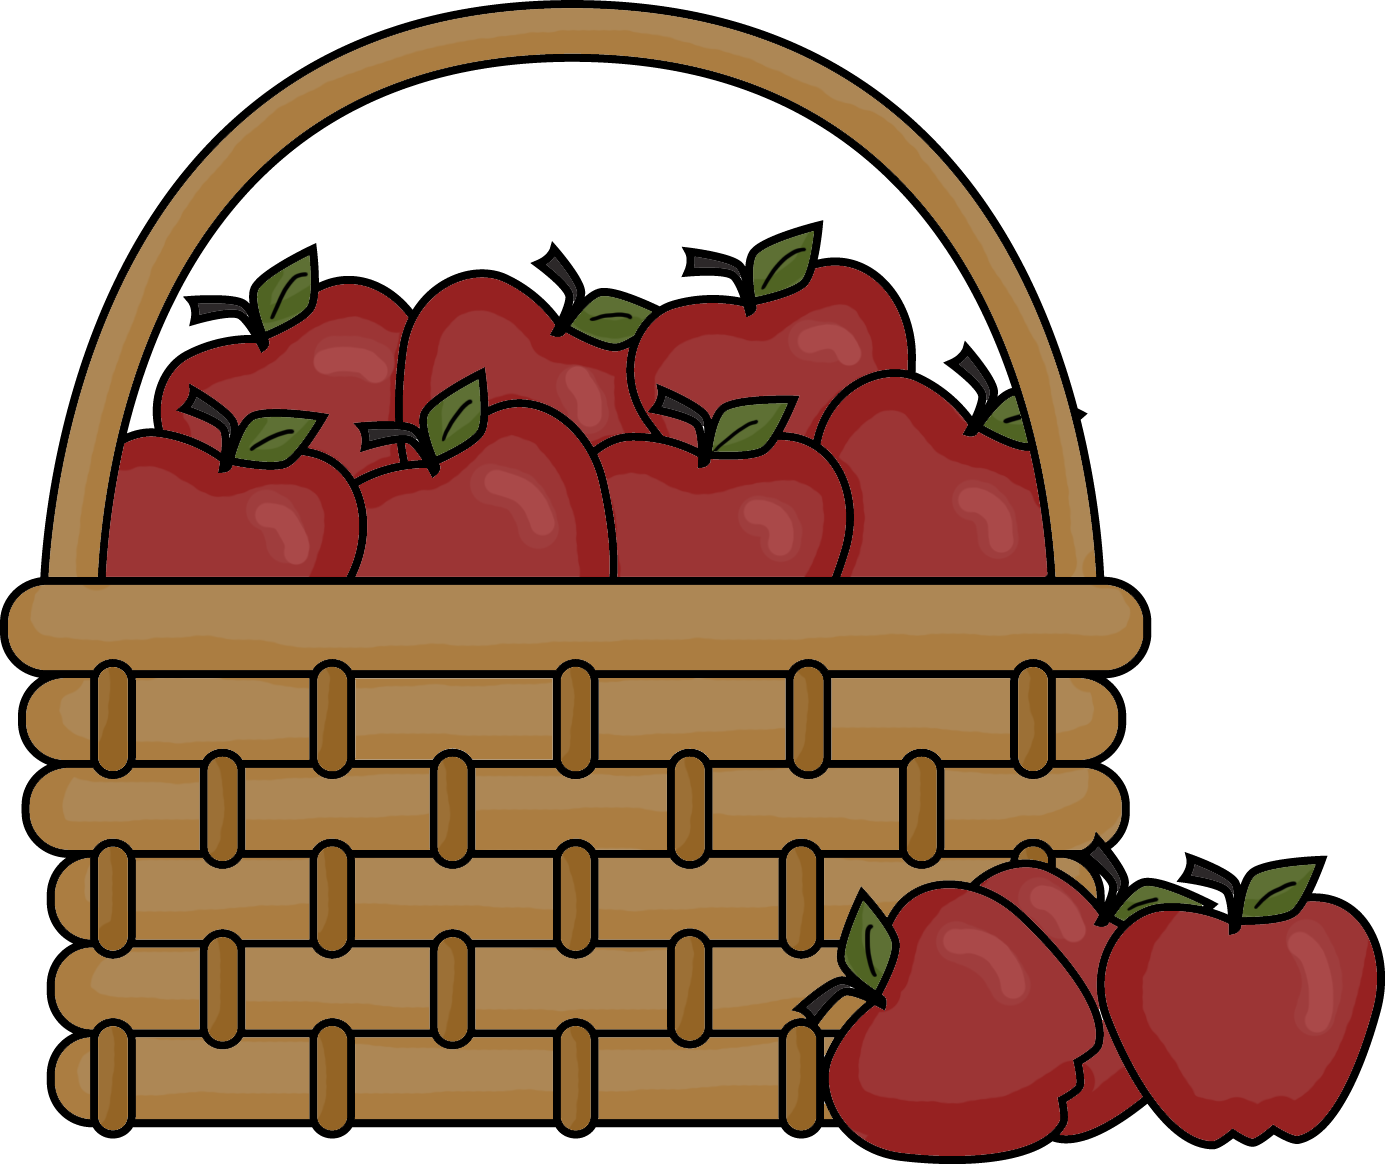 The of apples cartoon. Water clipart basket